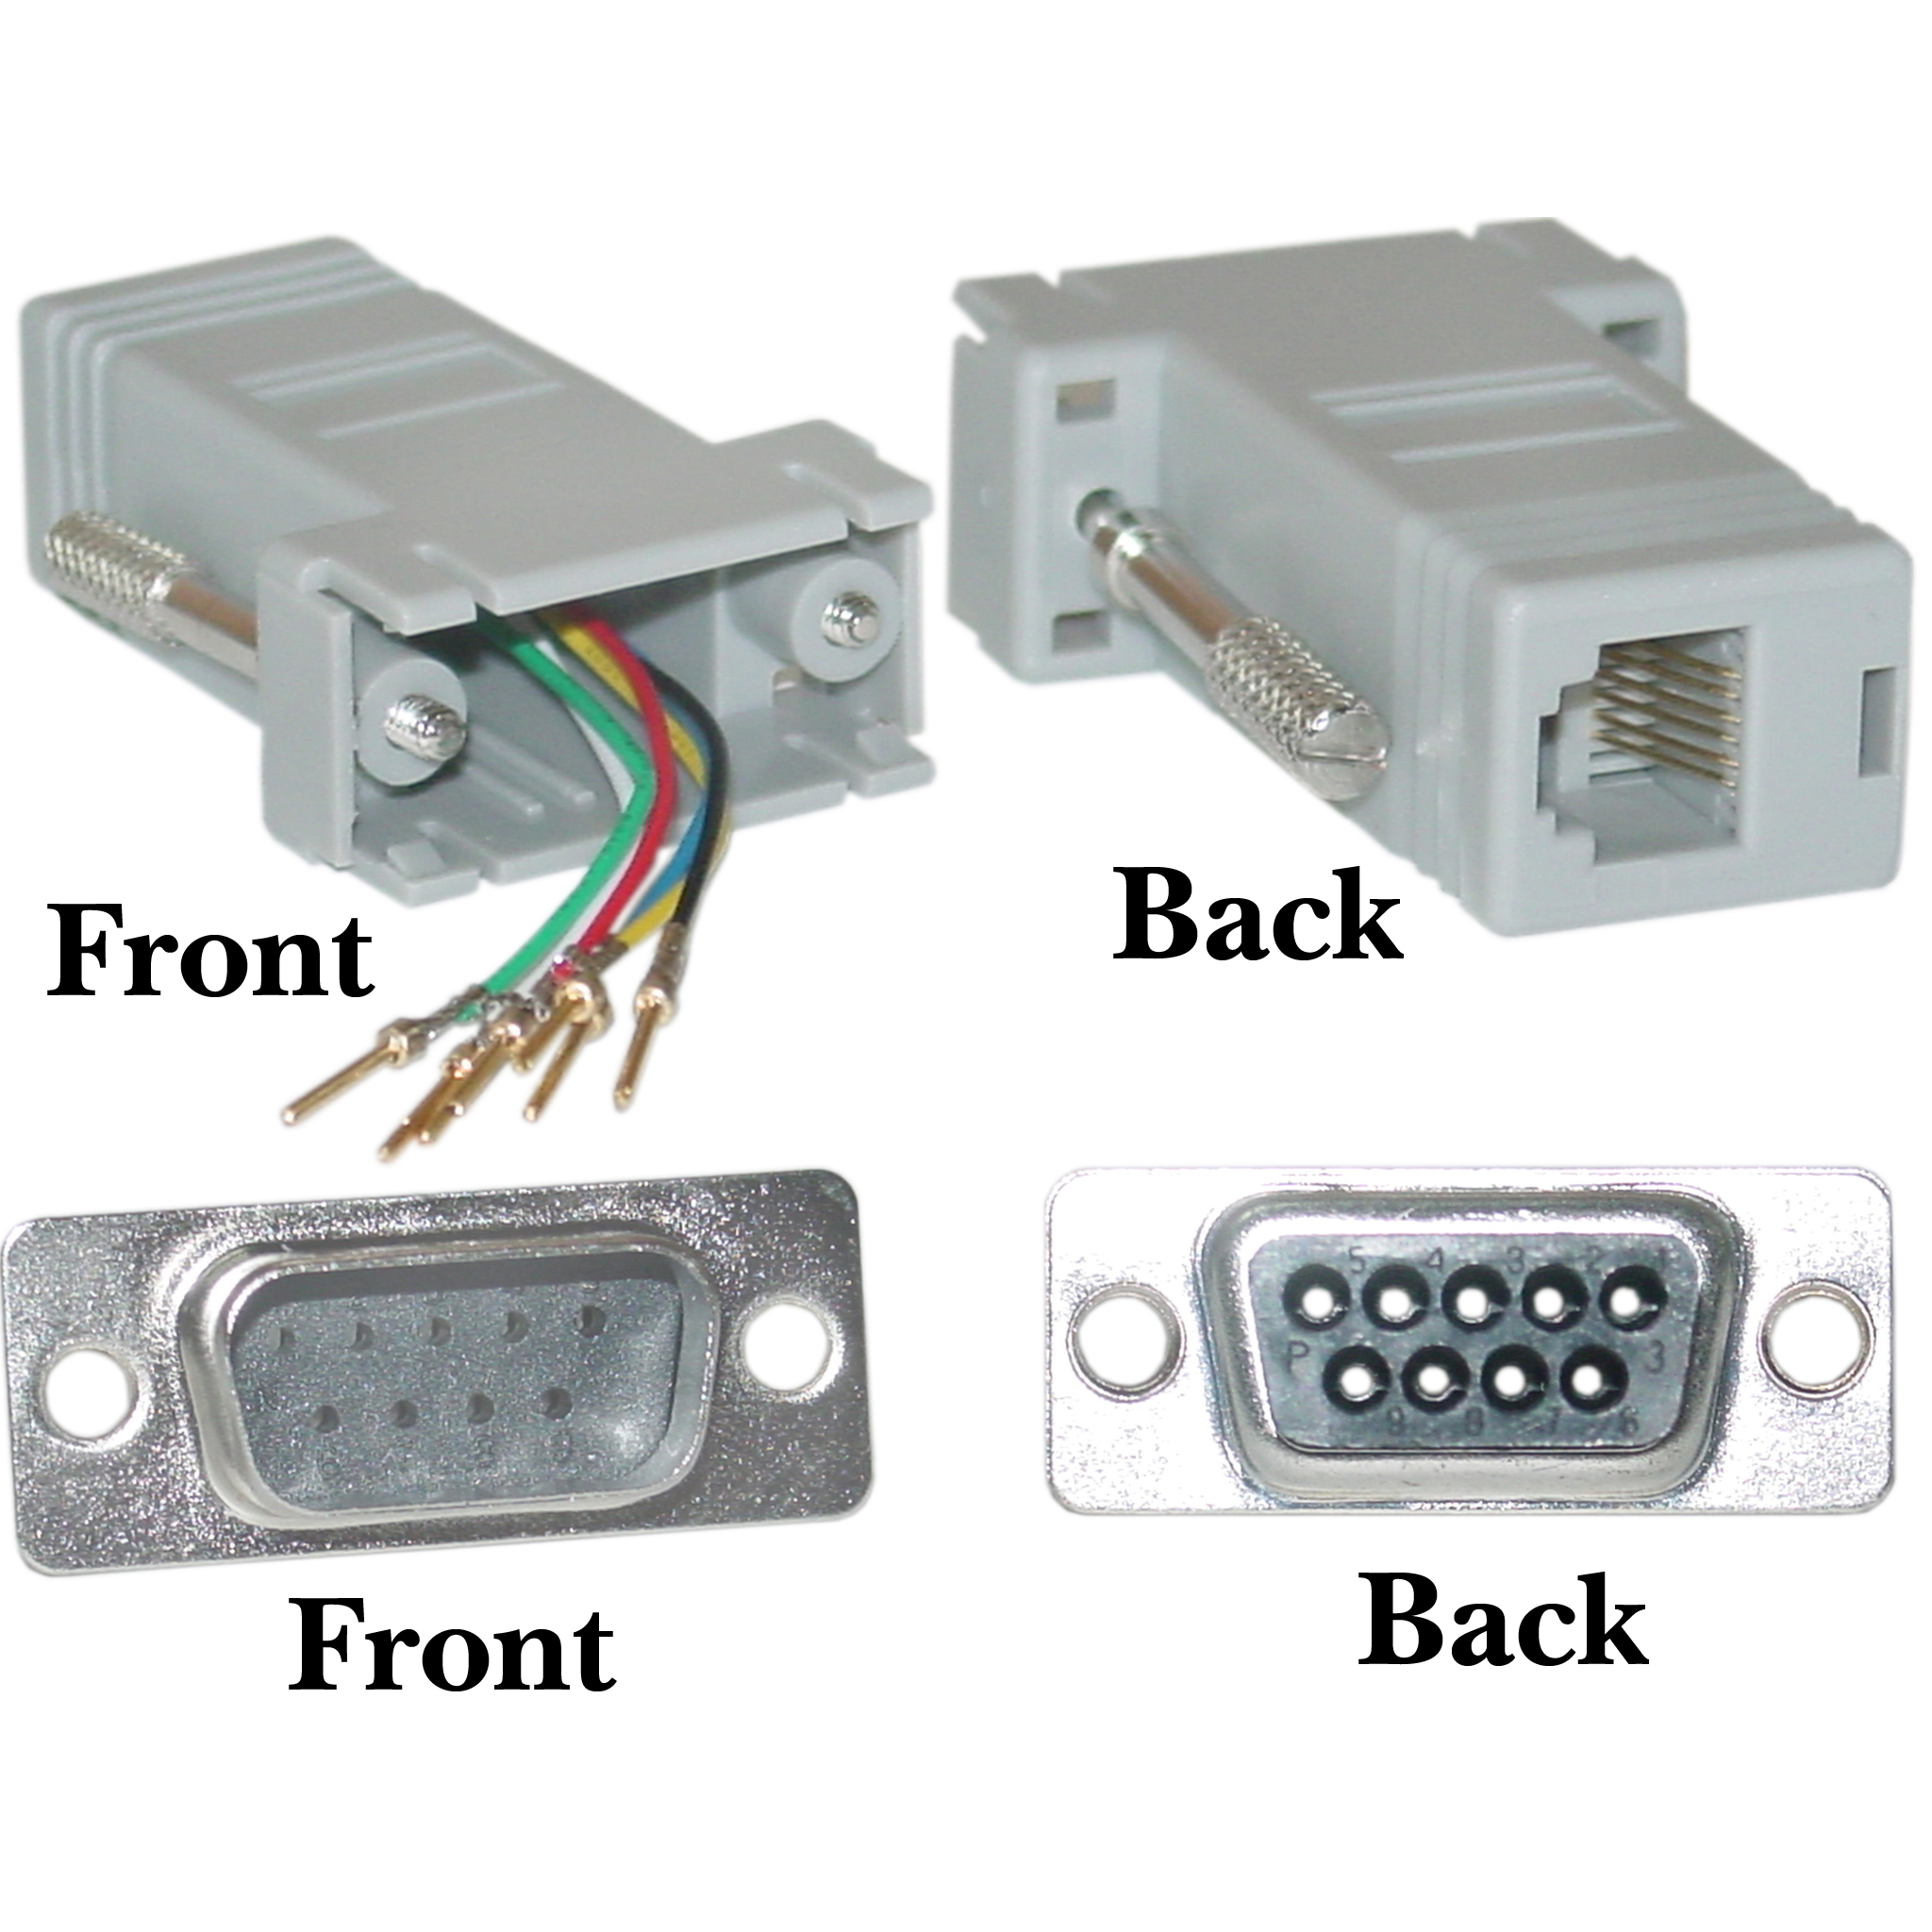 rj25 jack wiring diagram rj12 wiring standard rj12 free engine image for user military headphone jack wiring diagram